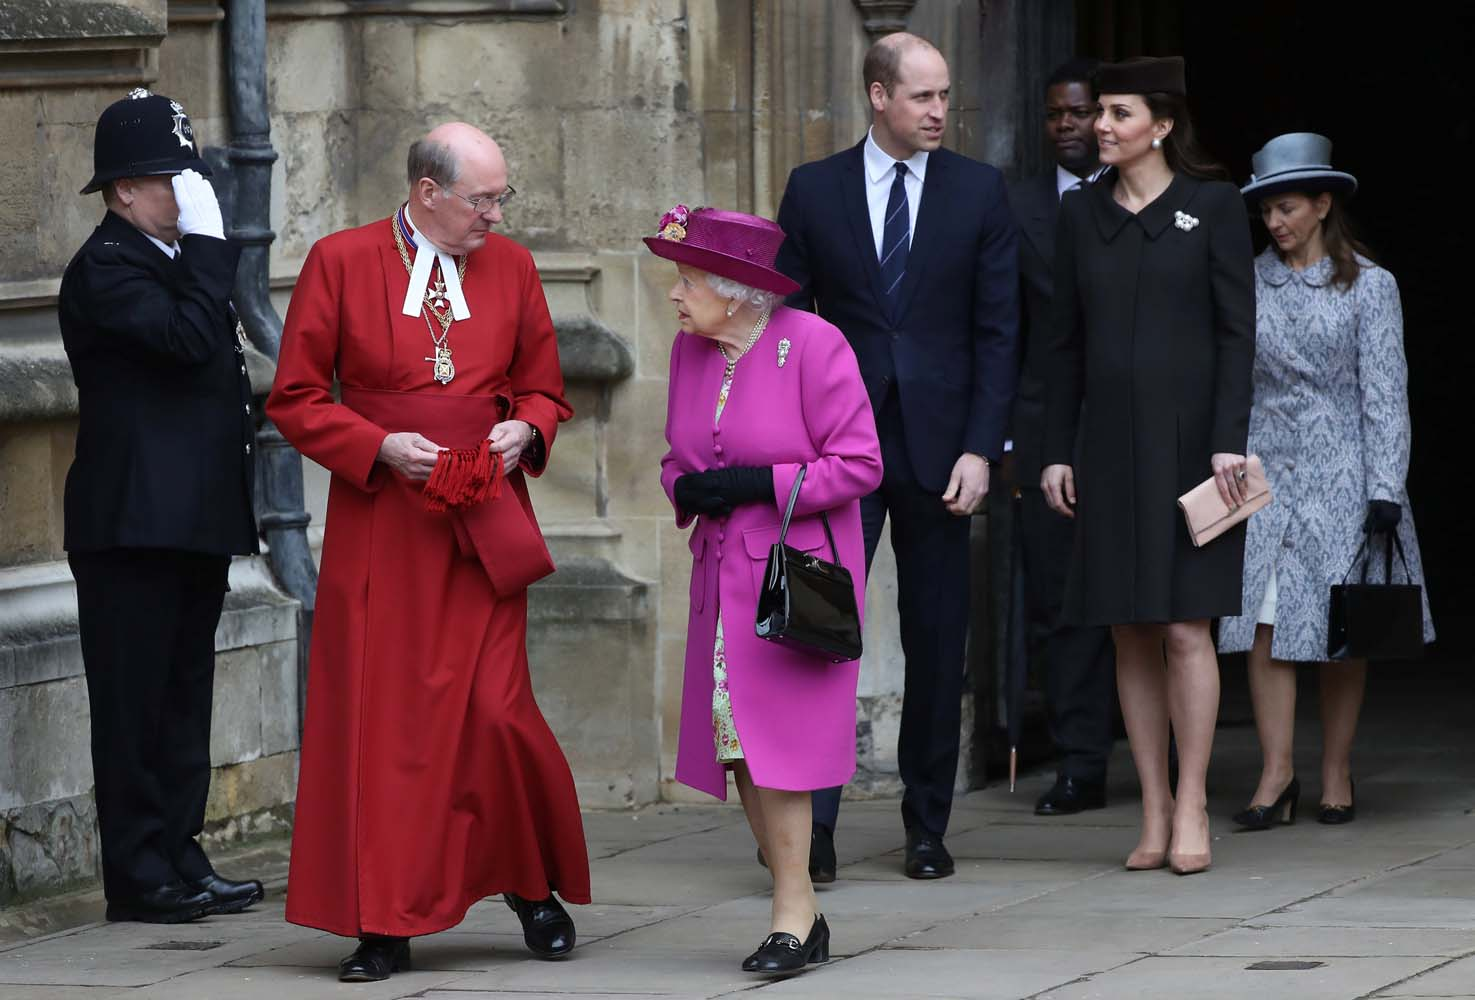 Britain's Queen Elizabeth and Prince William and Catherine, Duchess of Cambridge, leave the annual Easter Sunday service at St George's Chapel at Windsor Castle in Windsor, Britain, April 1, 2018. REUTERS/Simon Dawson